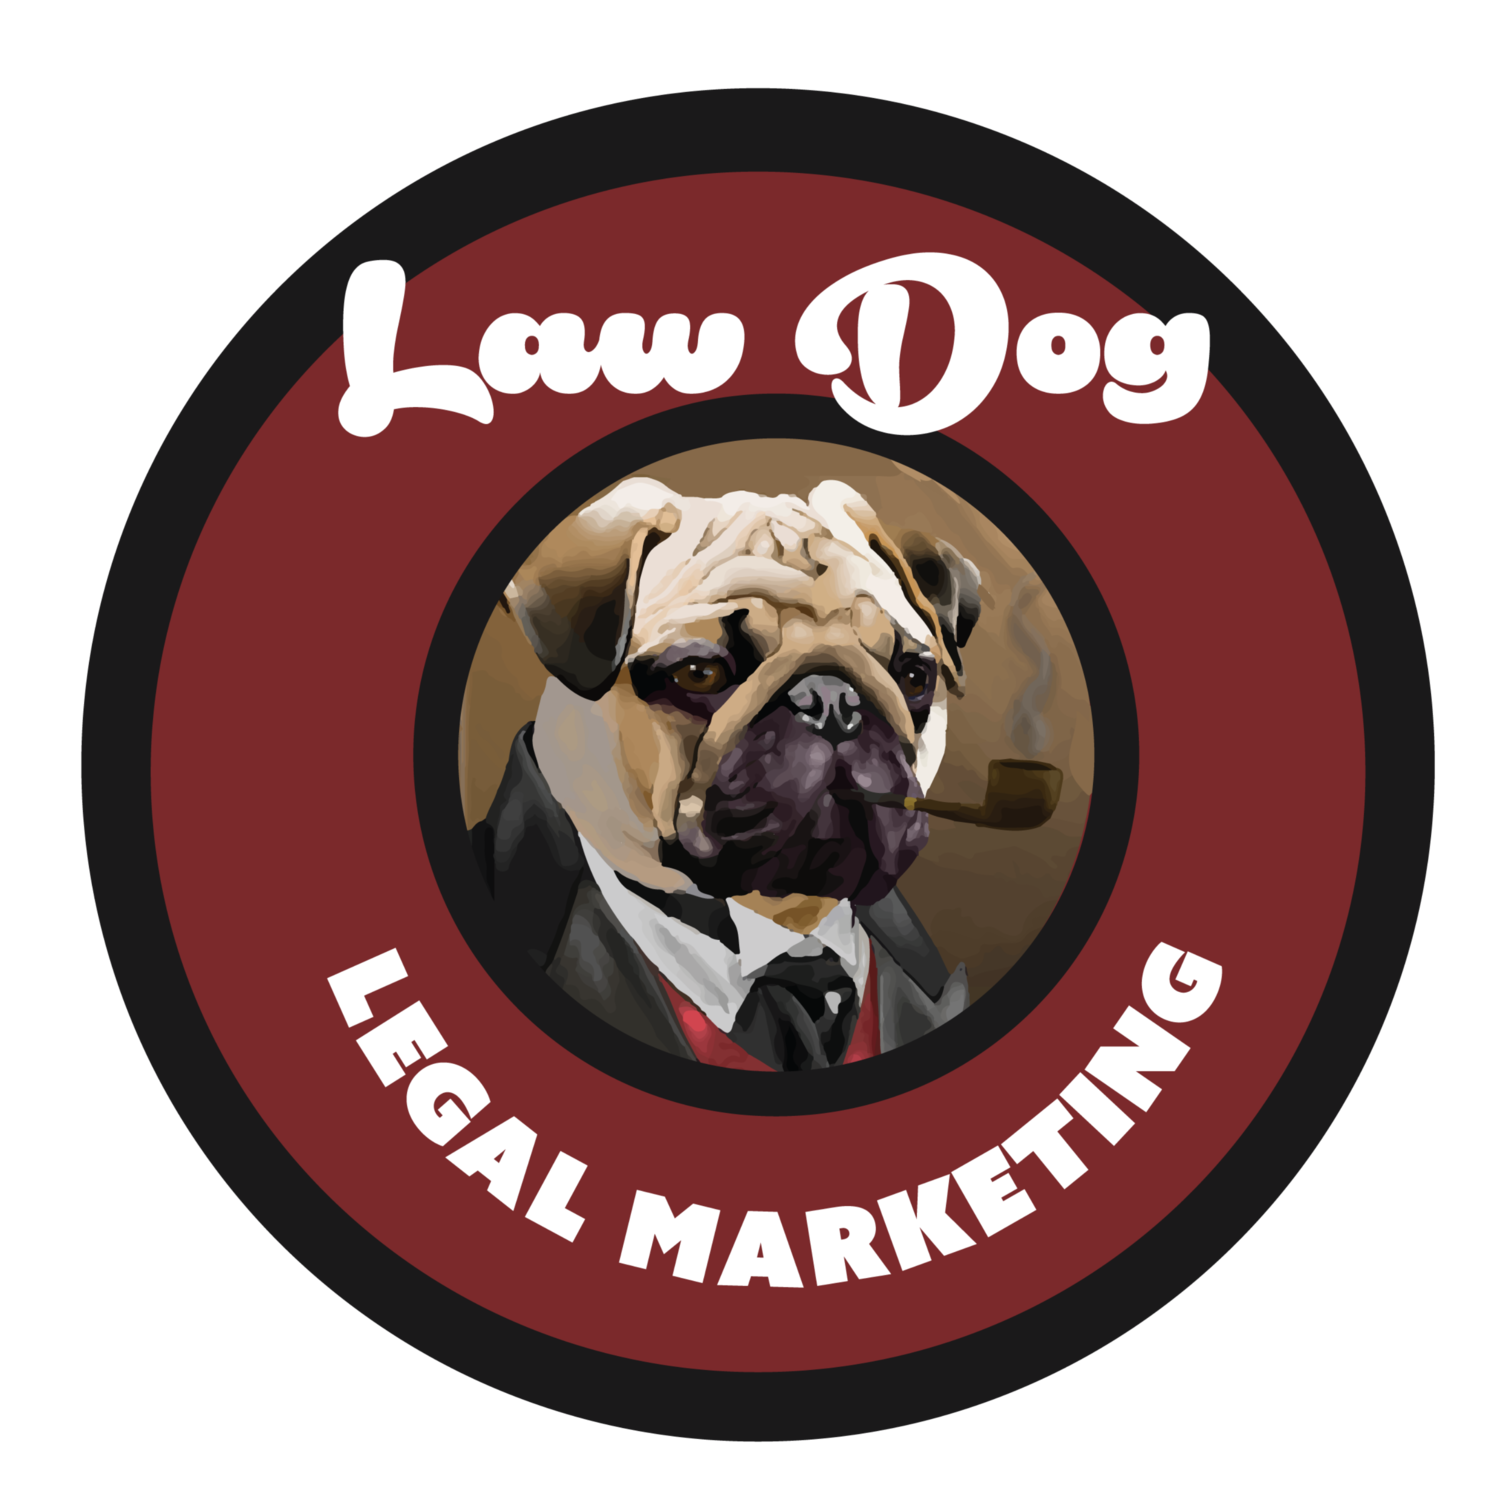 LAW FIRM MARKETING - SEO WHO PRACTICED LAW OVER 20 YEARS - I RANK ATTORNEY WEBSITES